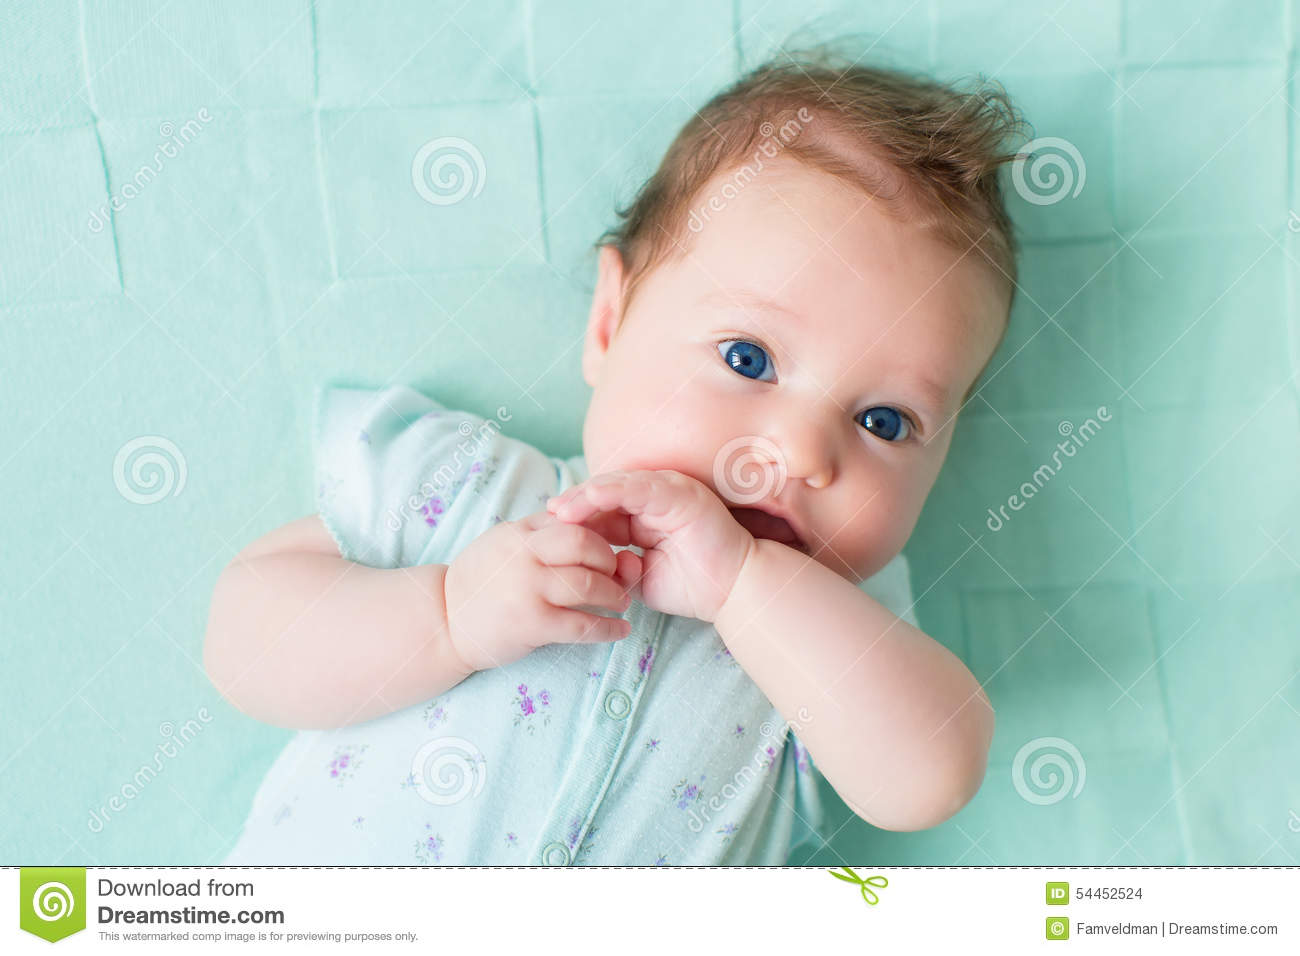 Newborn Baby Girl With Black Hair And Blue Eyes Adorable infant with blue eyes